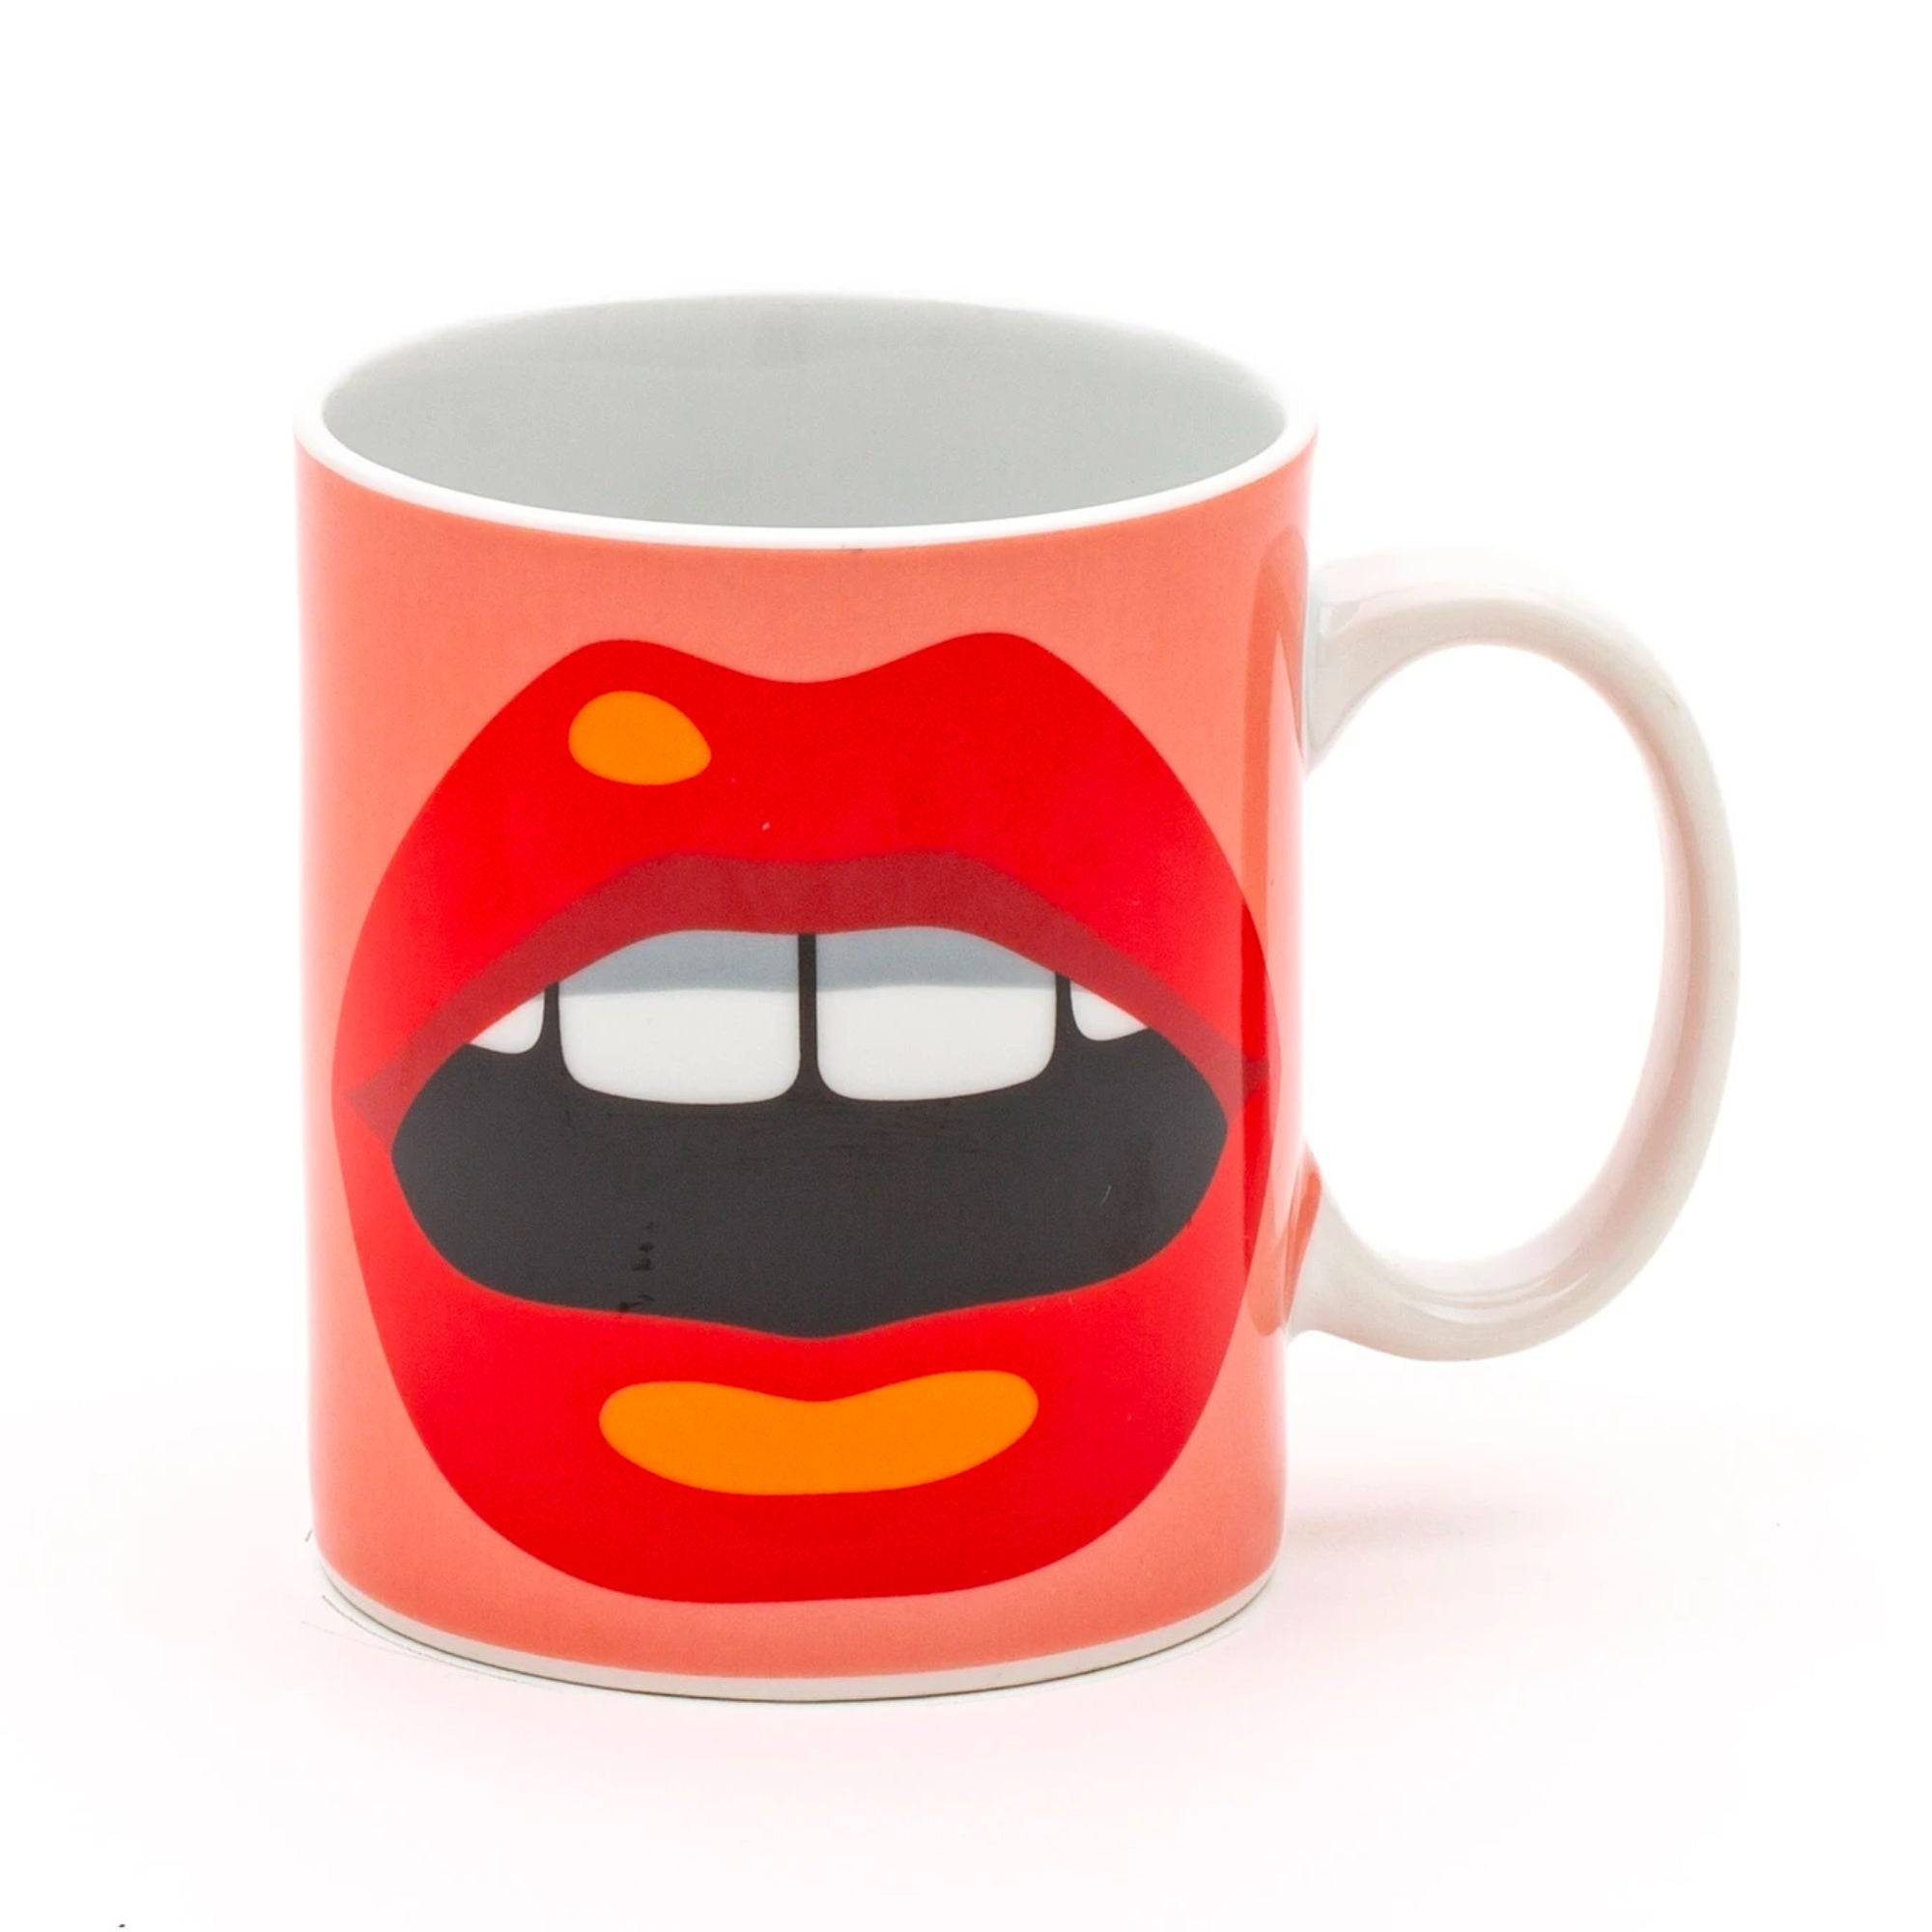 Seletti Blow by Studio Job Mug, mouth